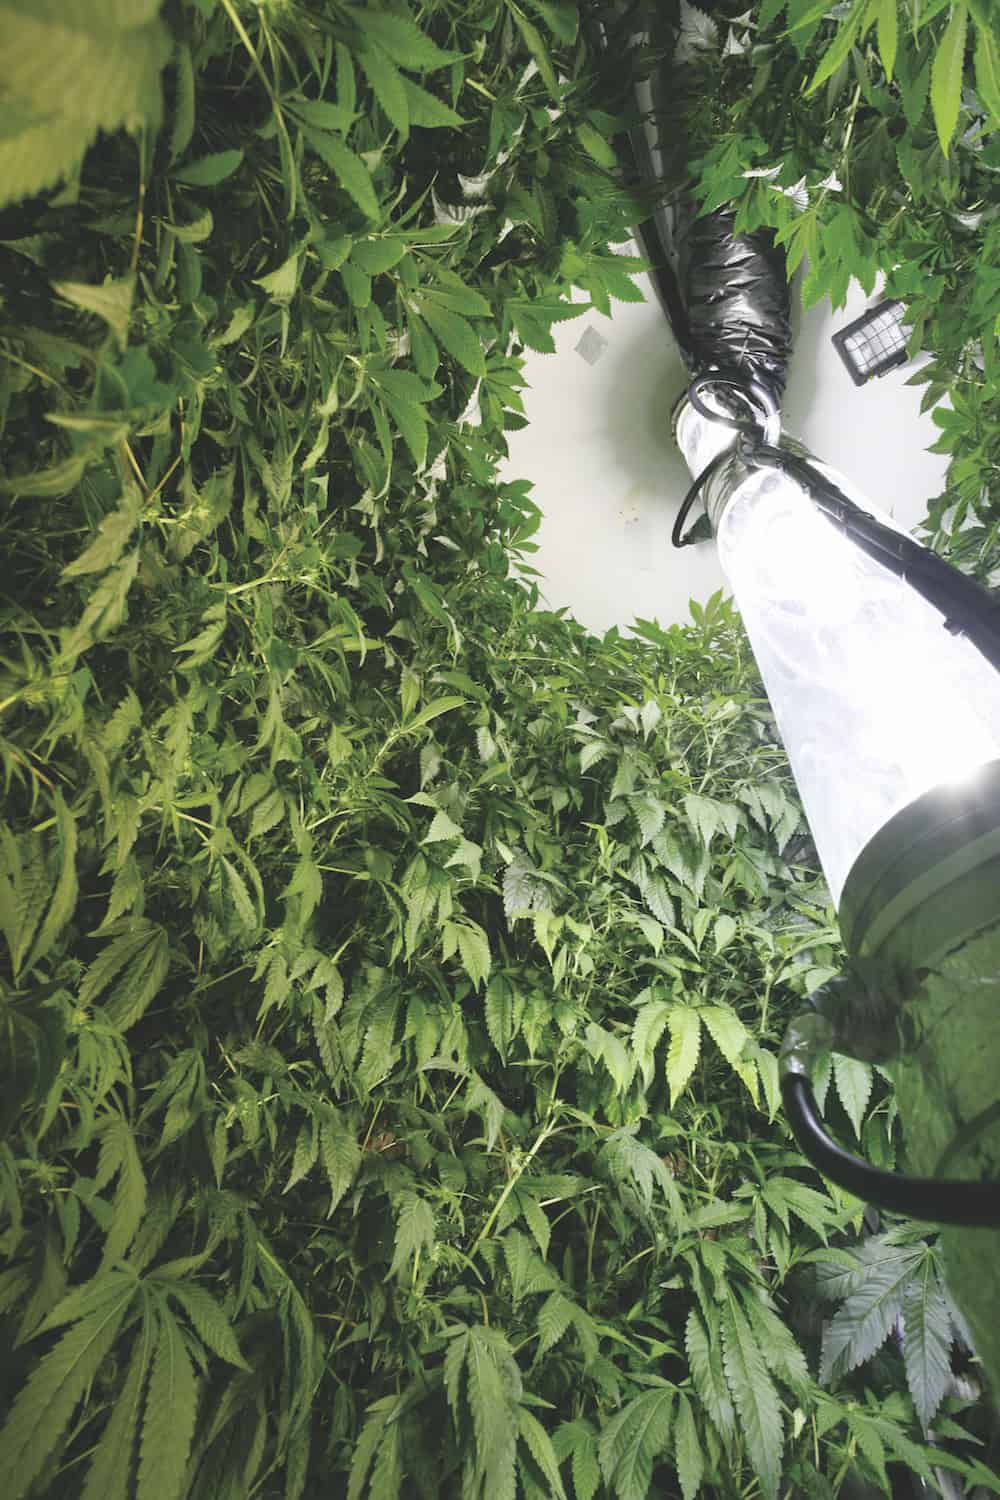 Vertical Growing: Maximize Your Yield in Tight Spaces